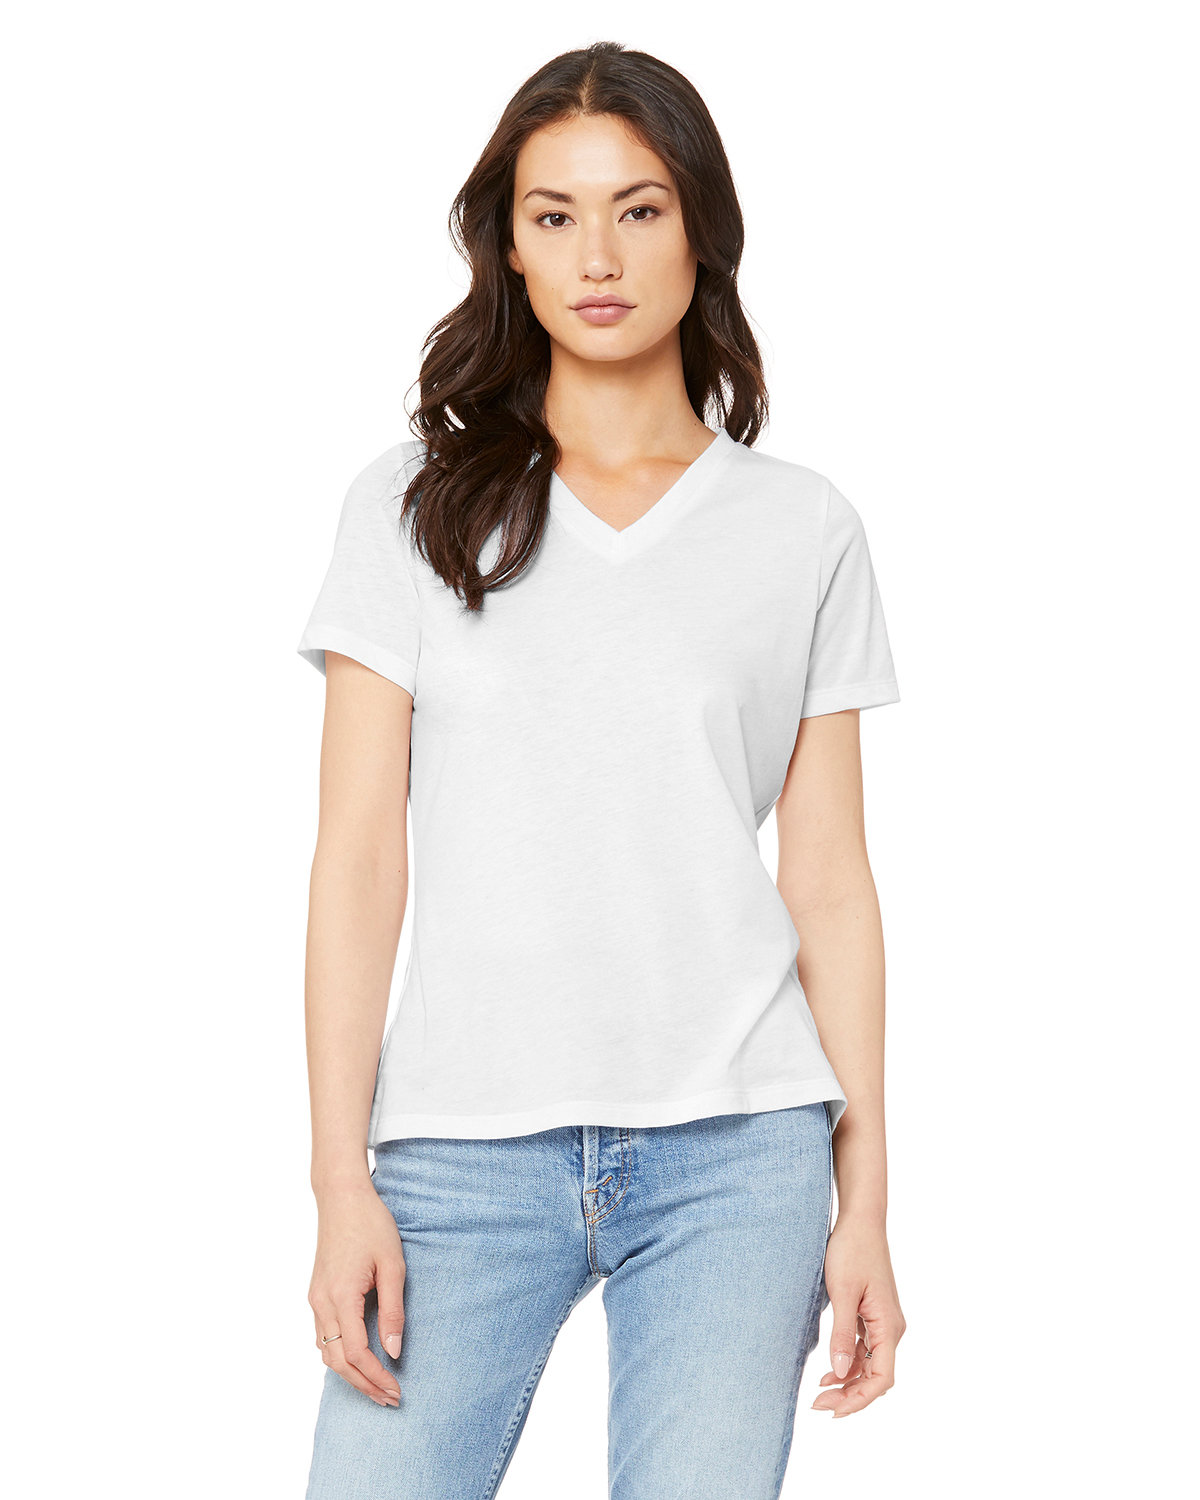 Bella + Canvas Ladies' Relaxed Jersey V-Neck T-Shirt SOLID WHT TRBLND